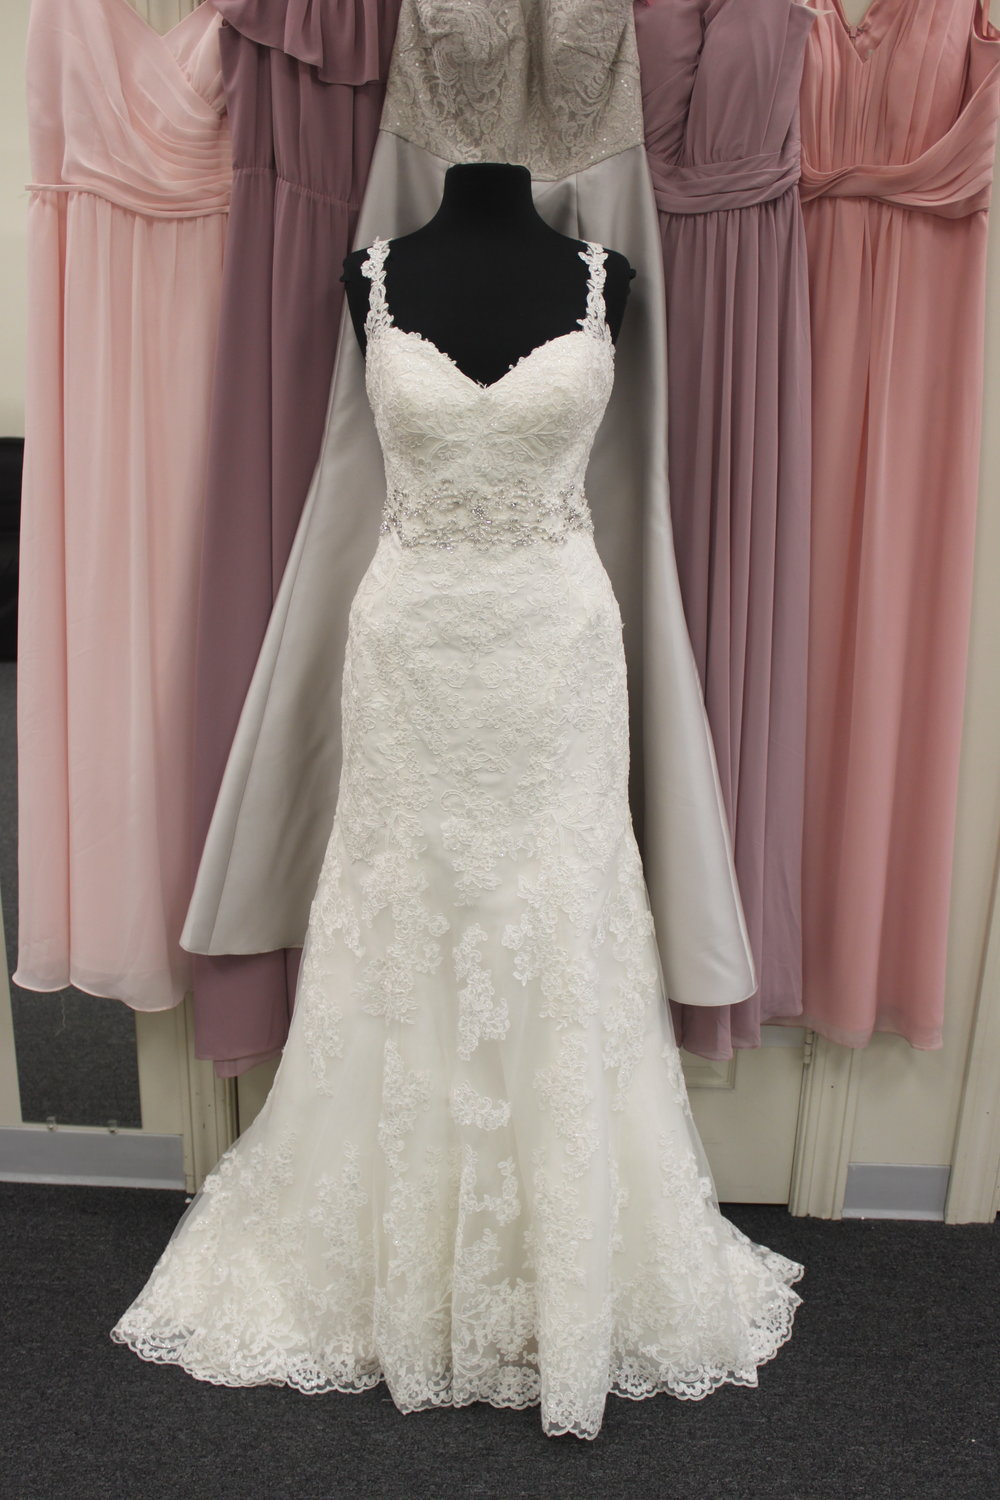 Stella York - 18594-663Location: BloomingtonSize: 12This dress is brand NEW!Original Retail Price: $1328OUR Price: $877